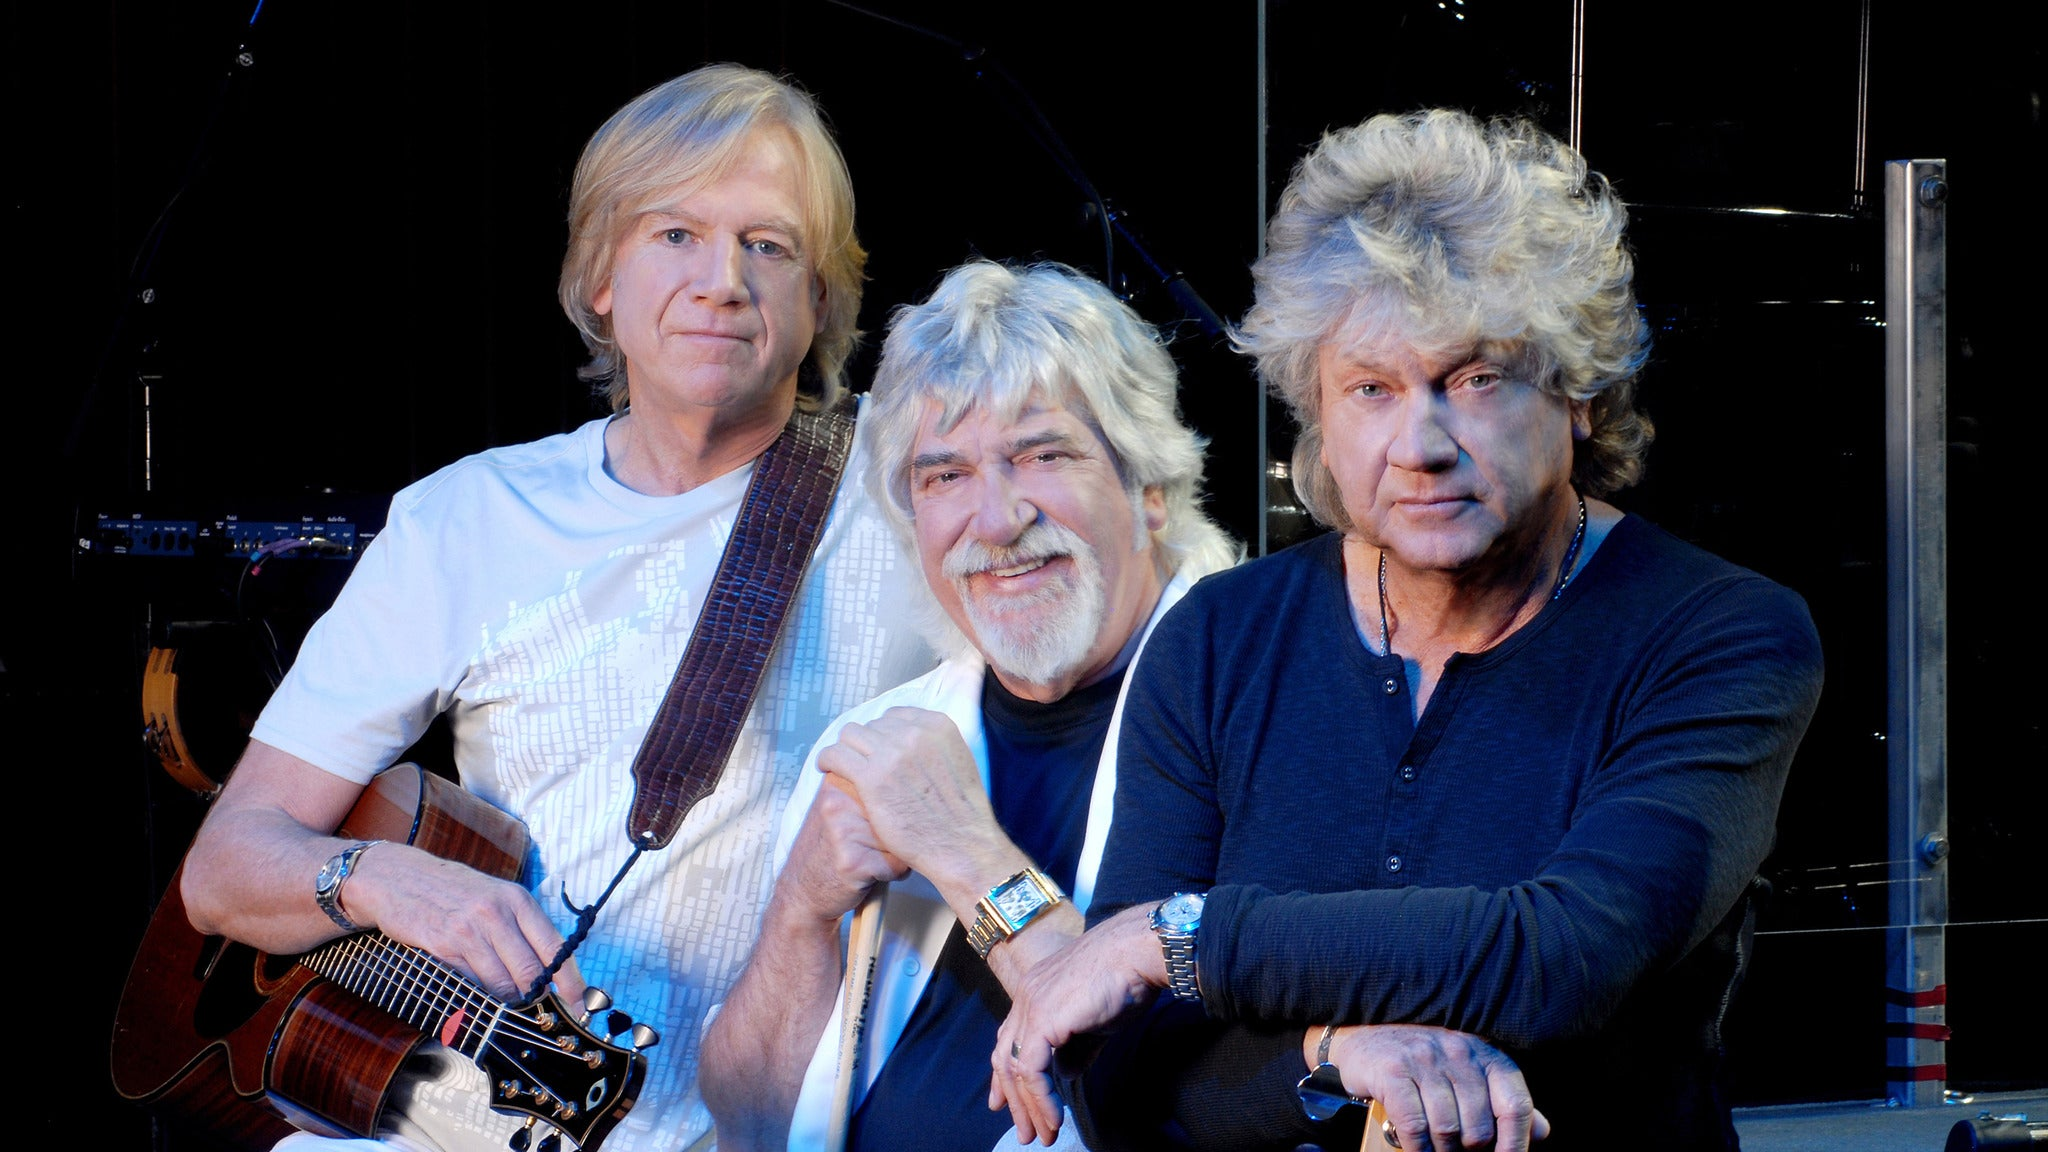 The Moody Blues at Adler Theatre